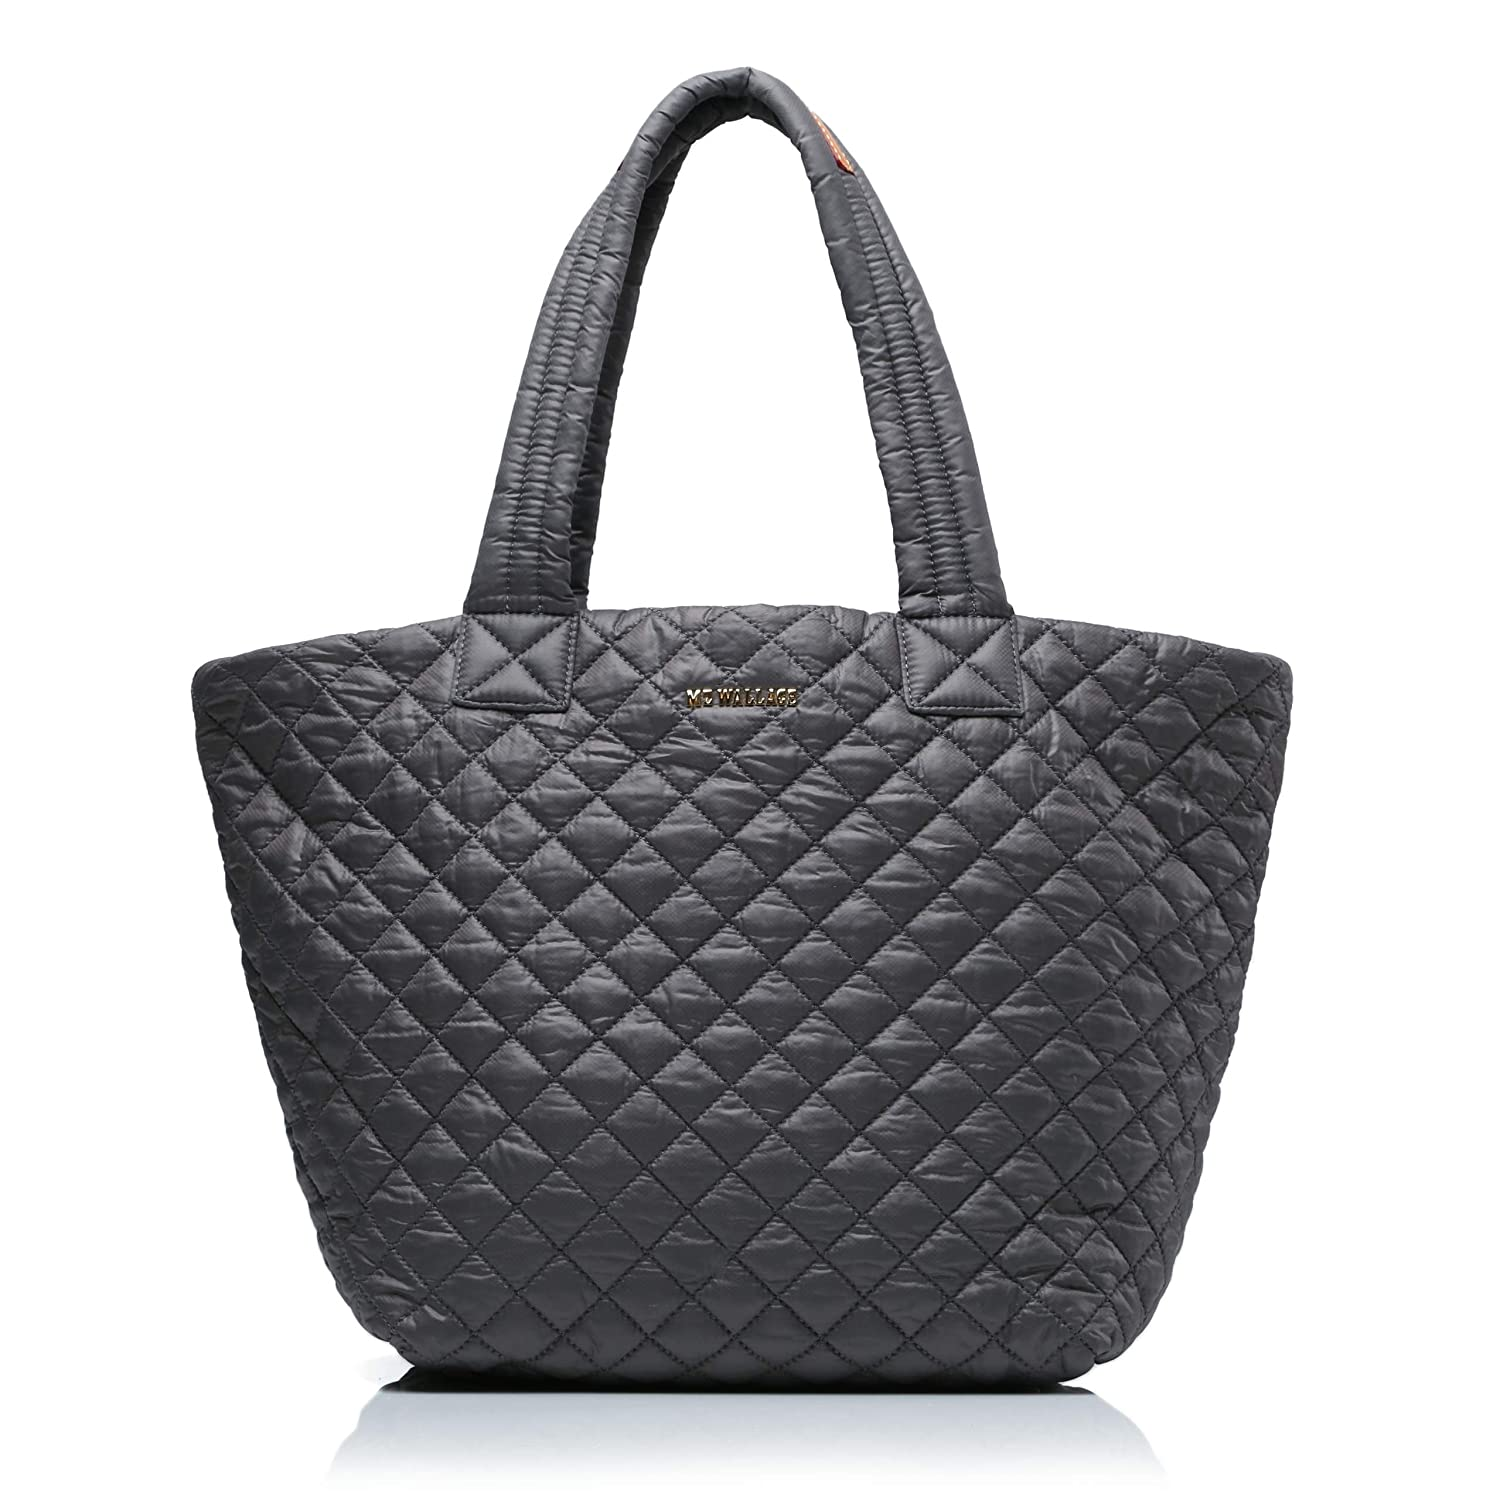 1b1f03d92fcd Amazon.com: MZ Wallace Women's Medium Metro Tote, Magnet, One Size: Shoes